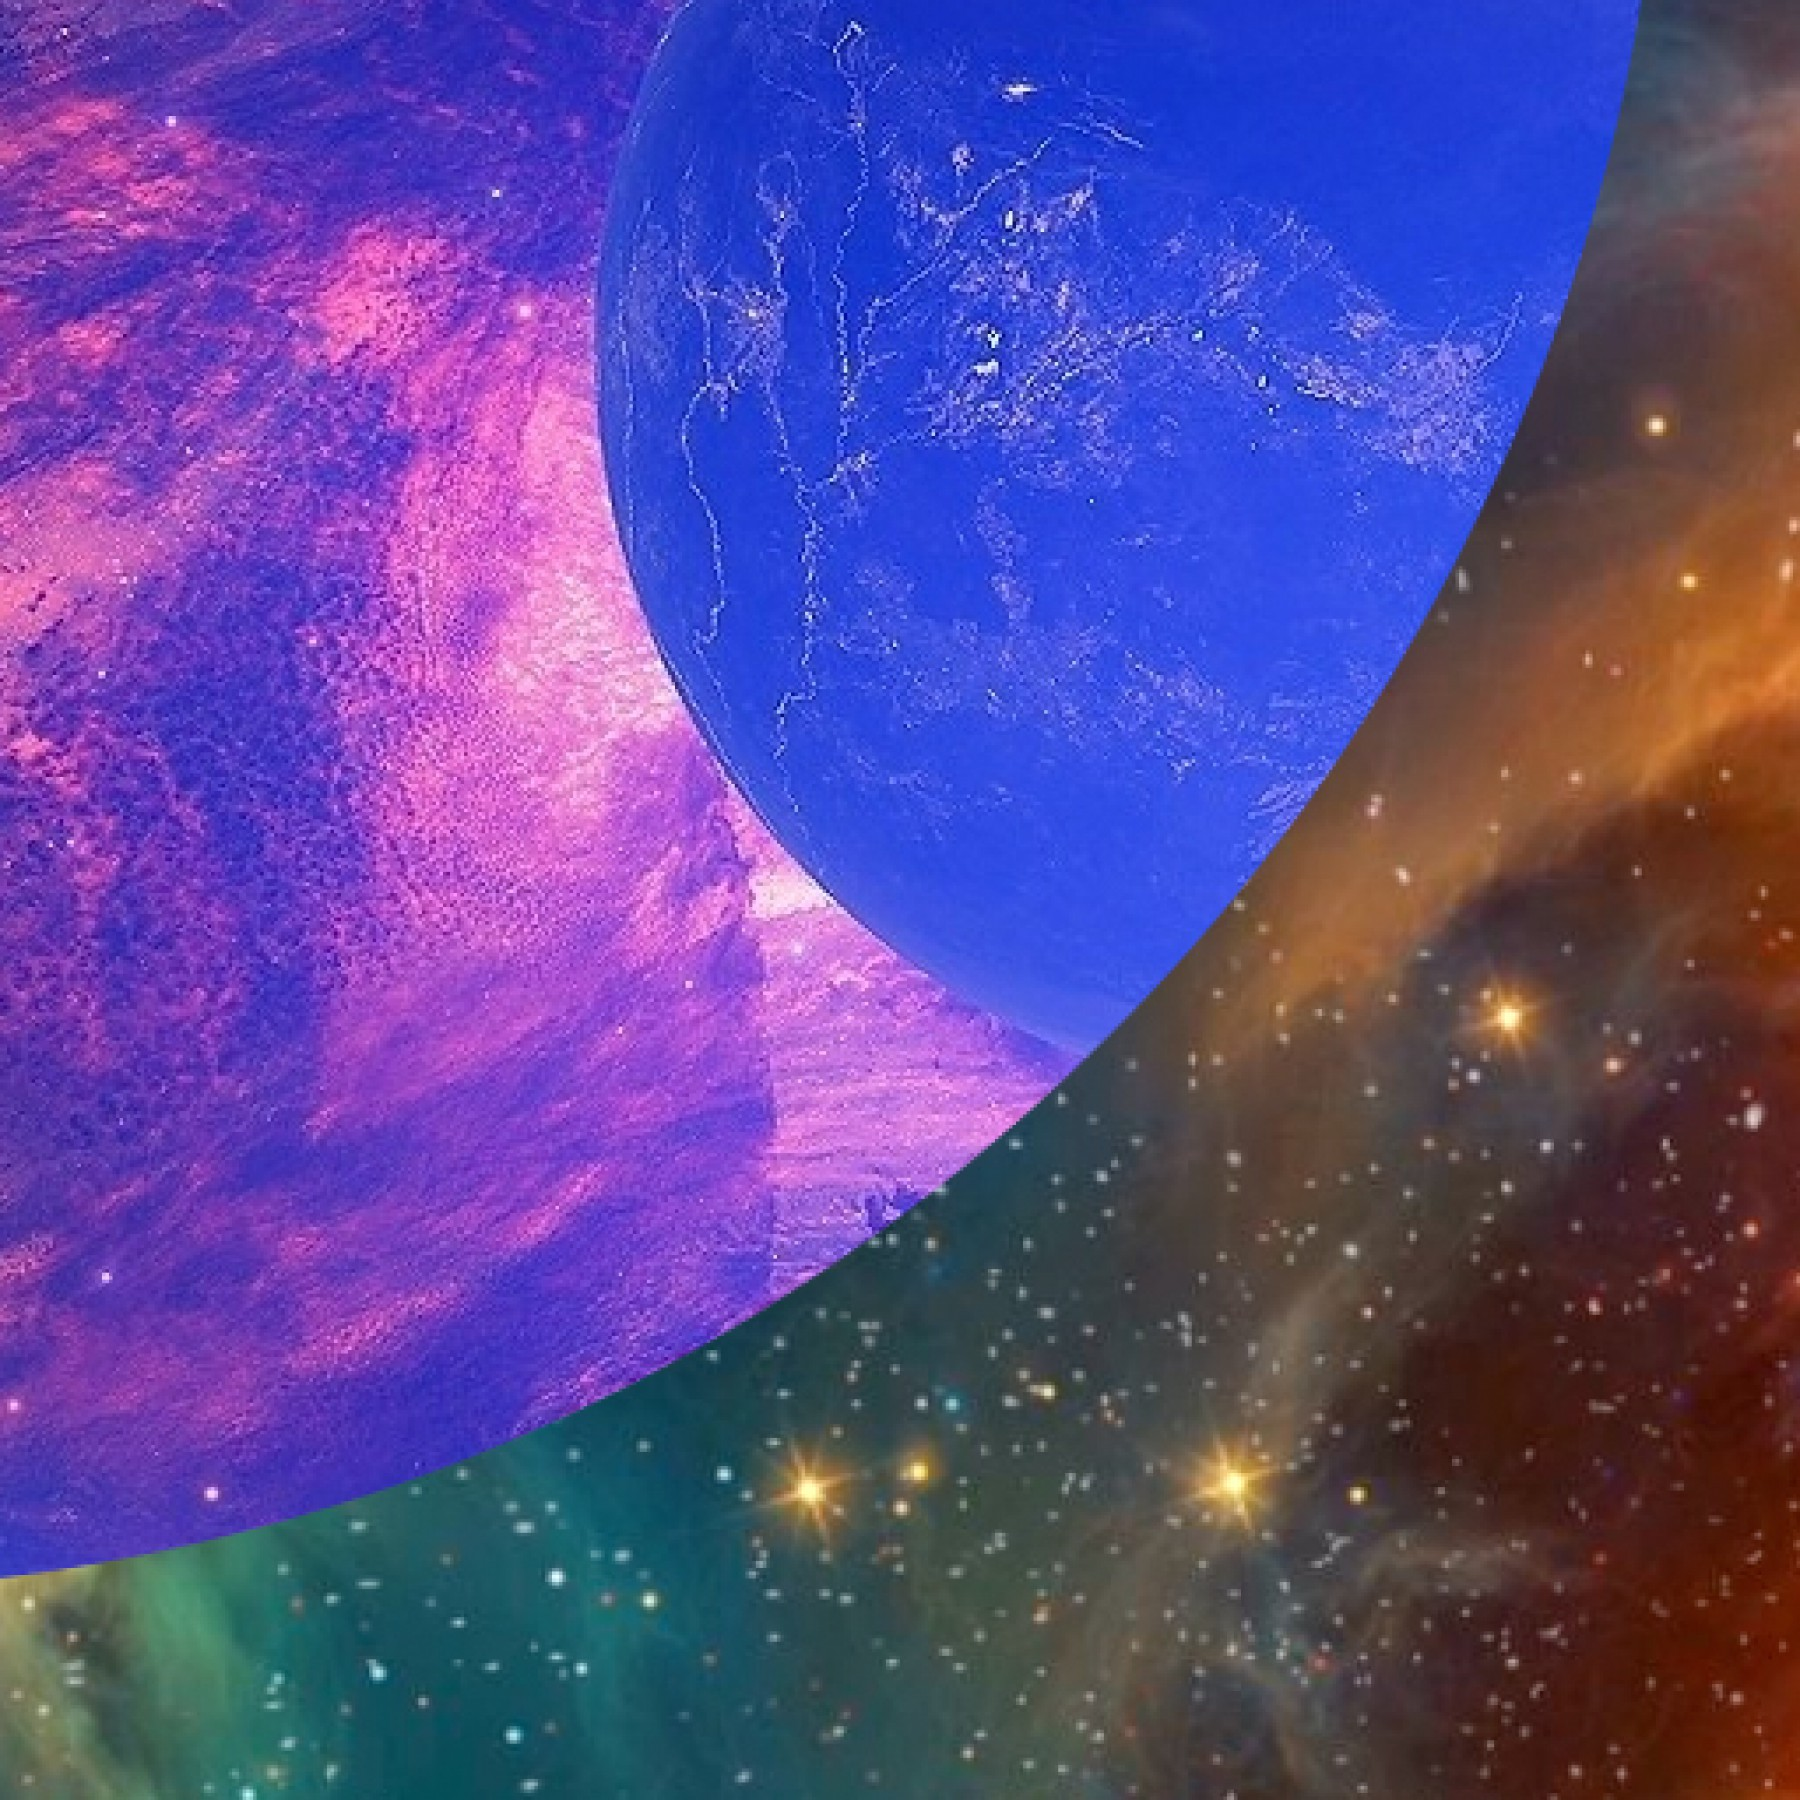 cosmos-sensory-travel-adults-relaxation-science-tech-main-location1